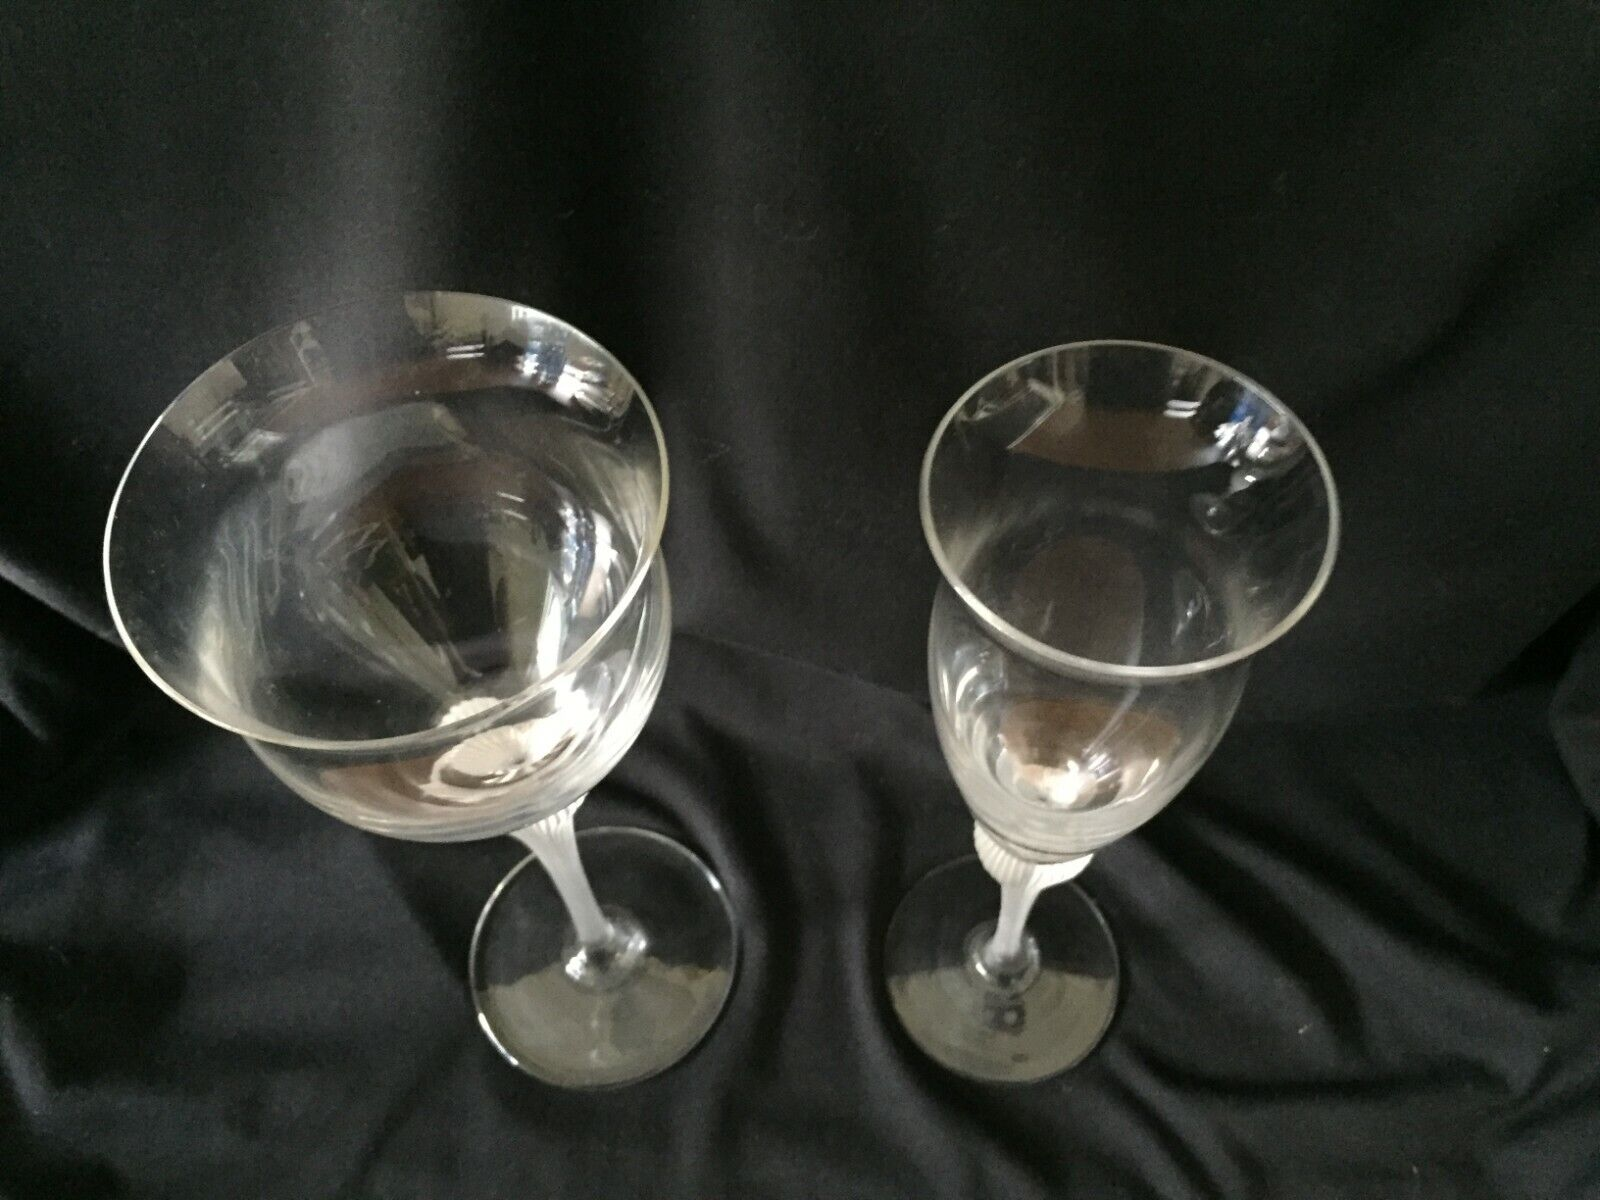 MIKASA SEA MIST CLEAR FROST STEM CRYSTAL SET 14 WATER GOBLET 12 CHAMPAGNE FLUTES - $199.99